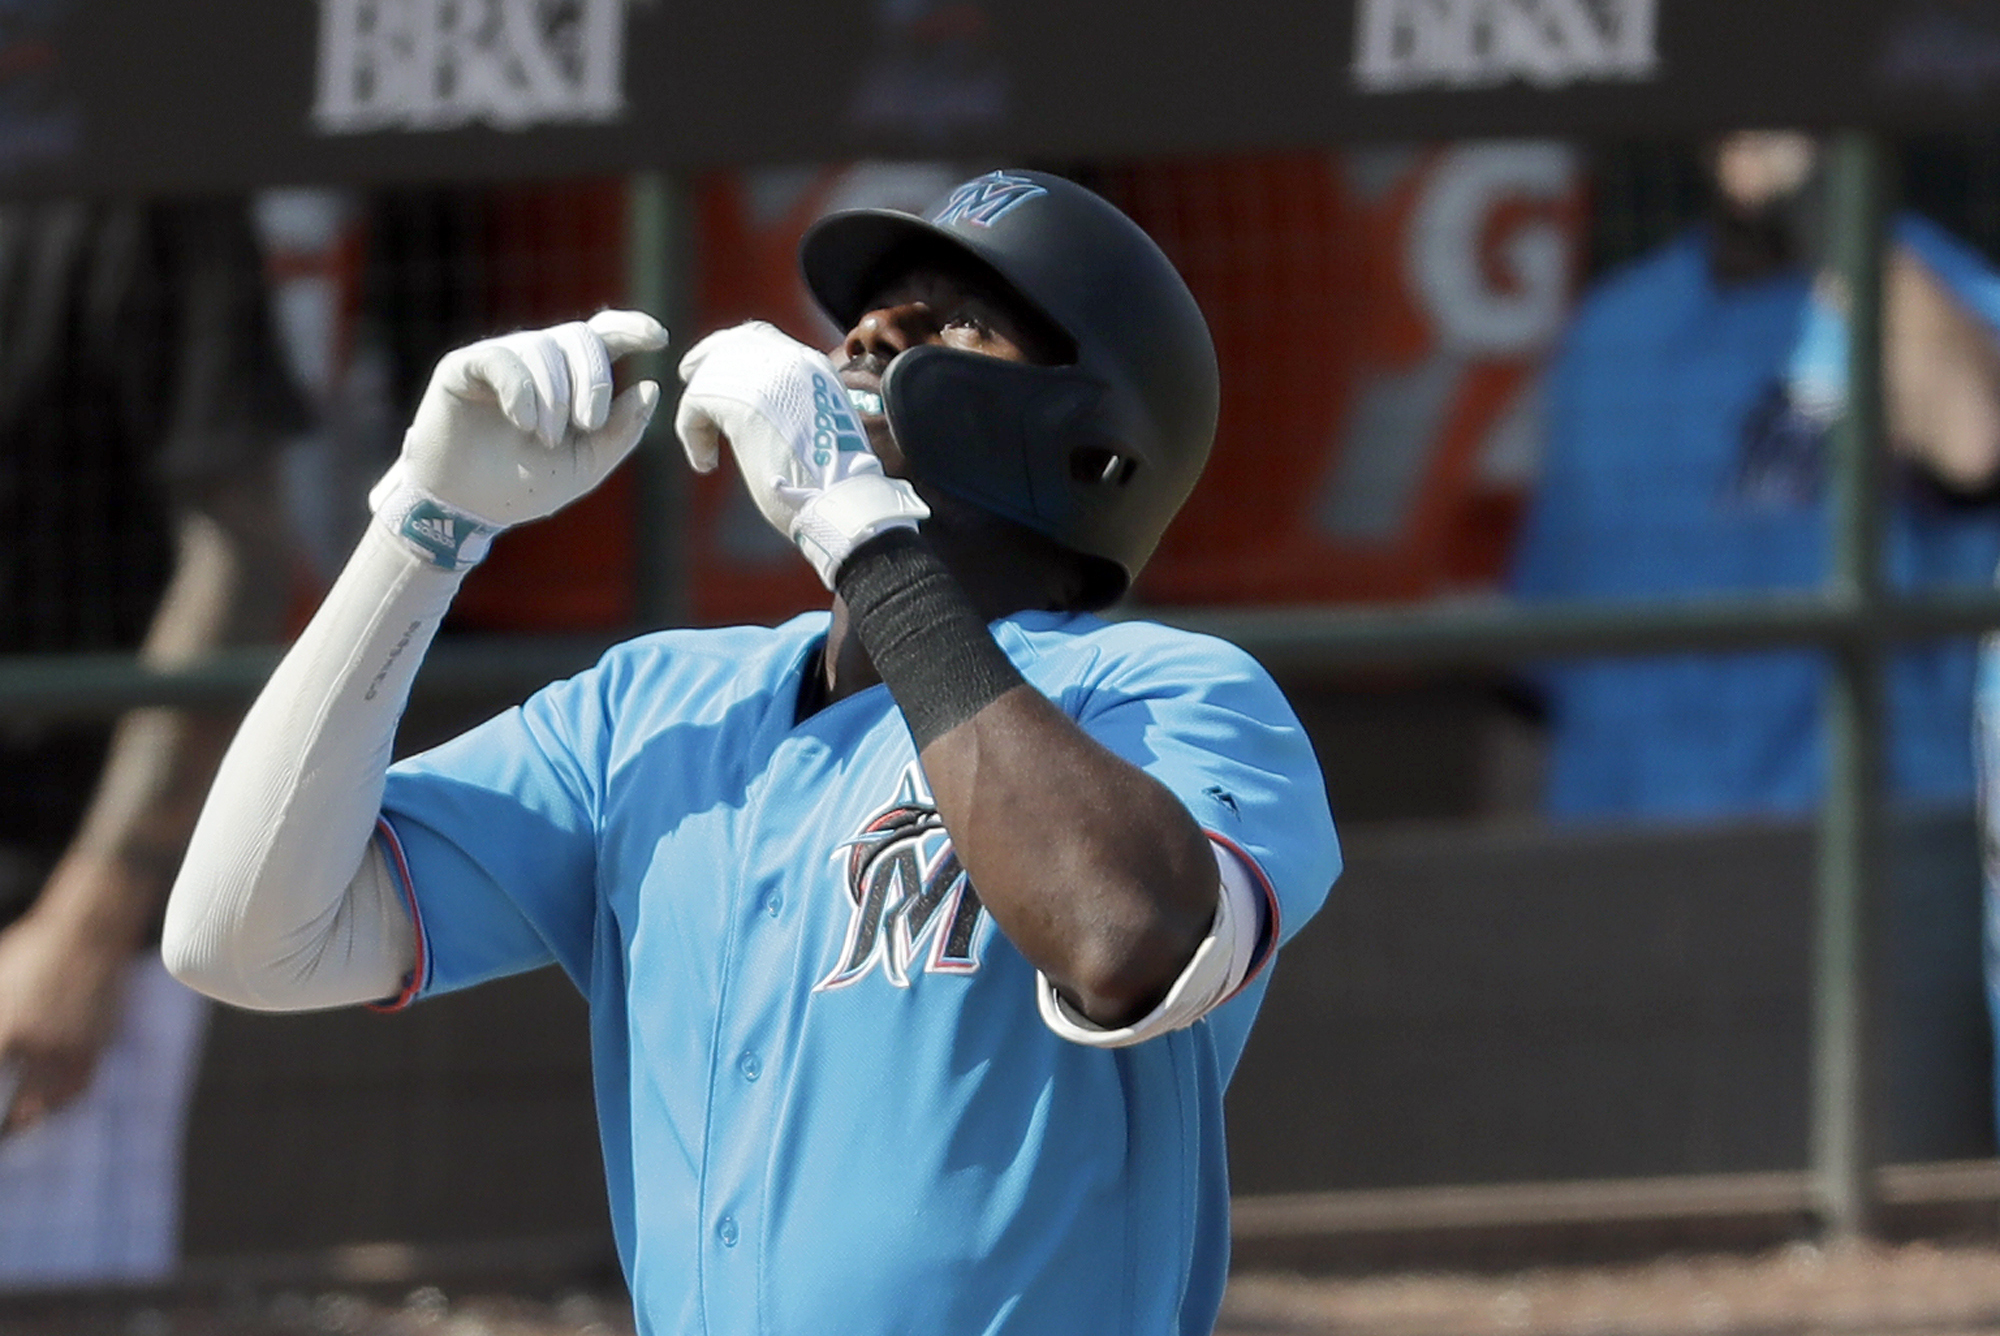 Marlins' Brinson expecting spring power to carry into season